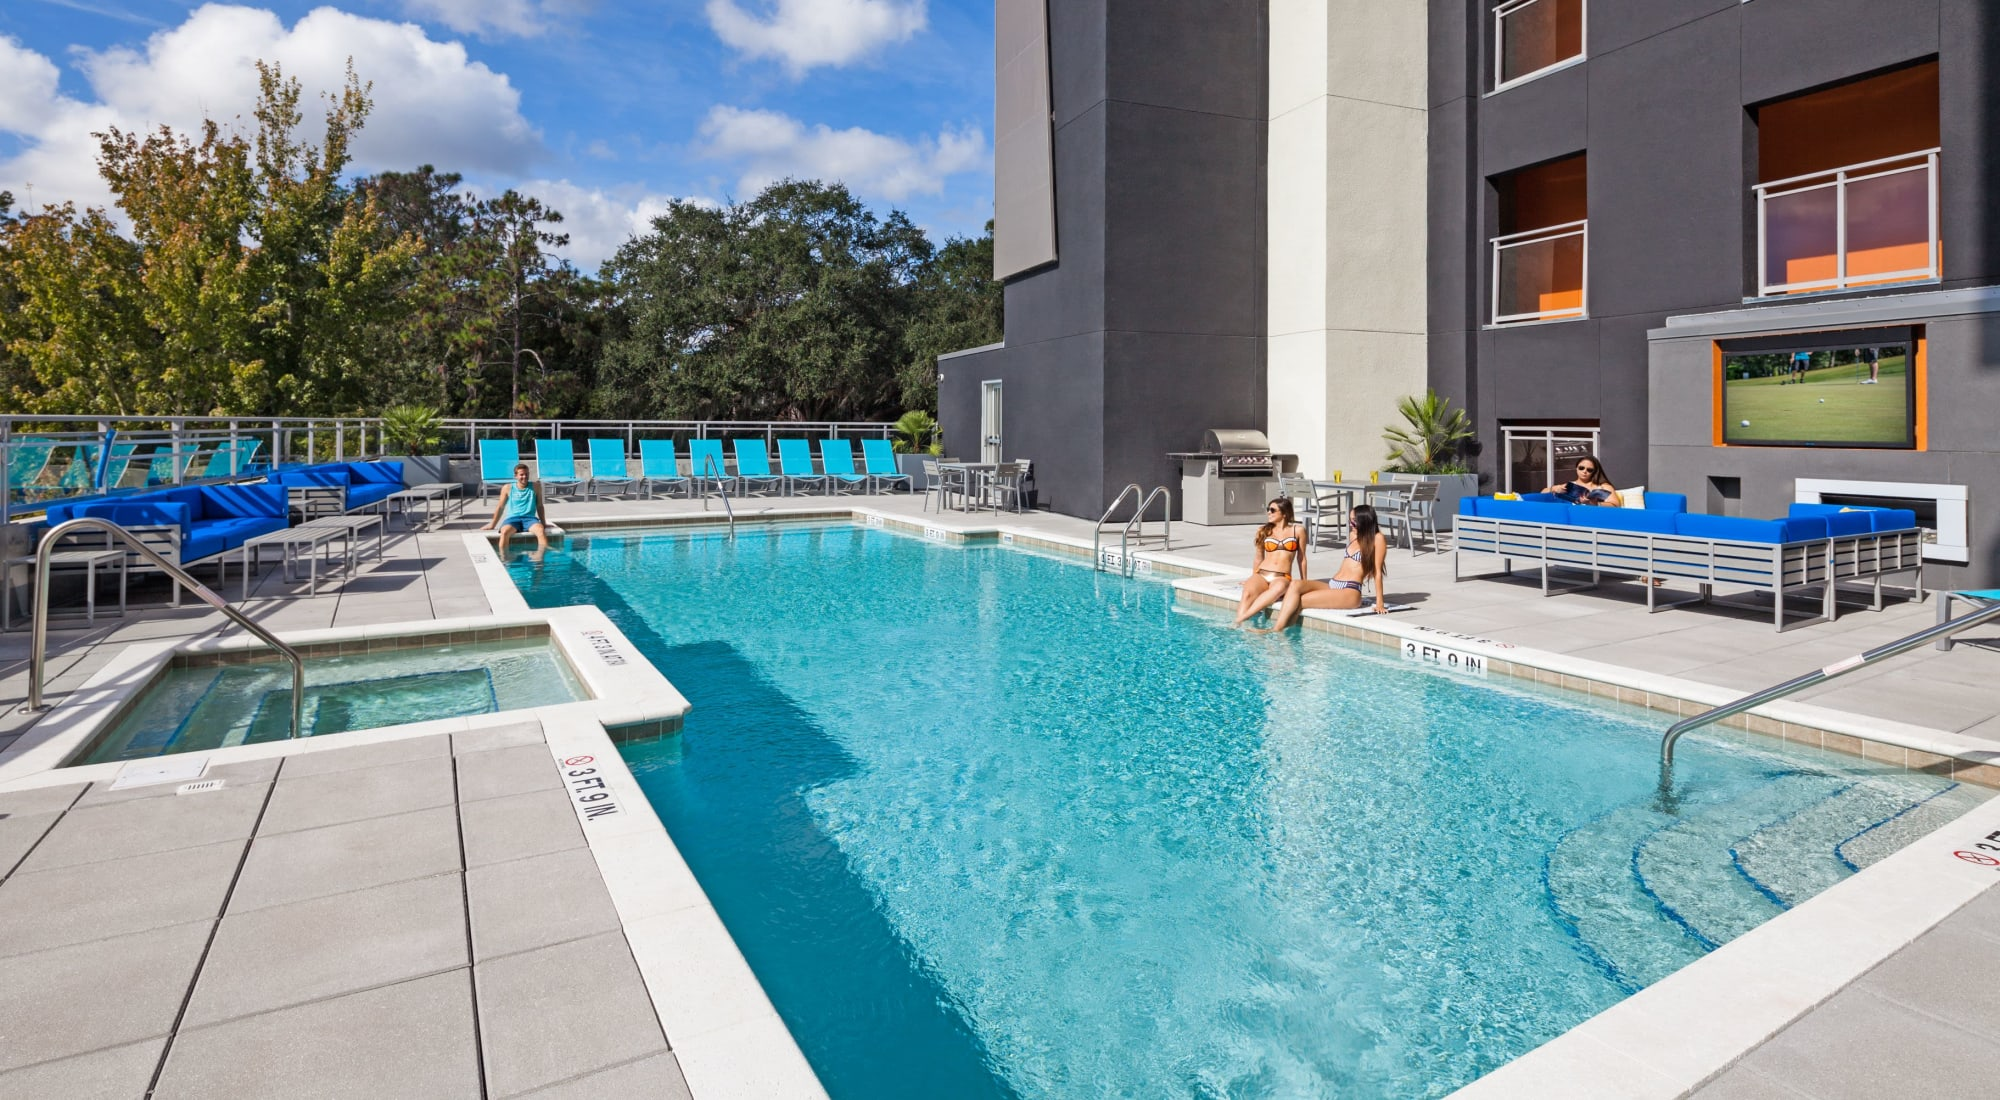 Apartments at Social 28 in Gainesville, Florida